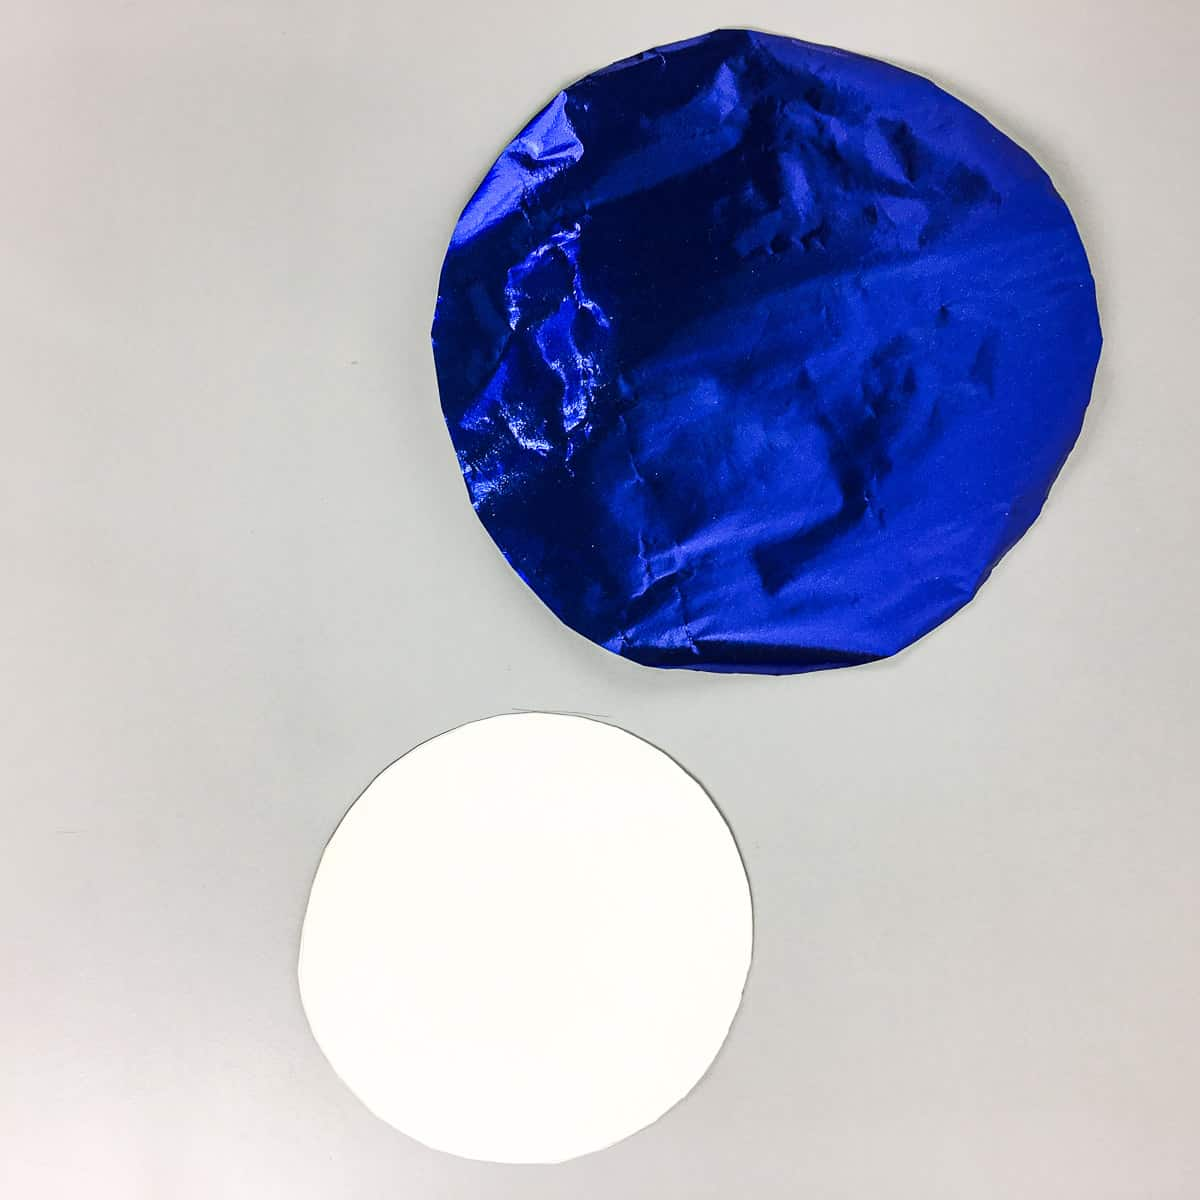 2 cake boards, one wrapped in blue paper and another one in white